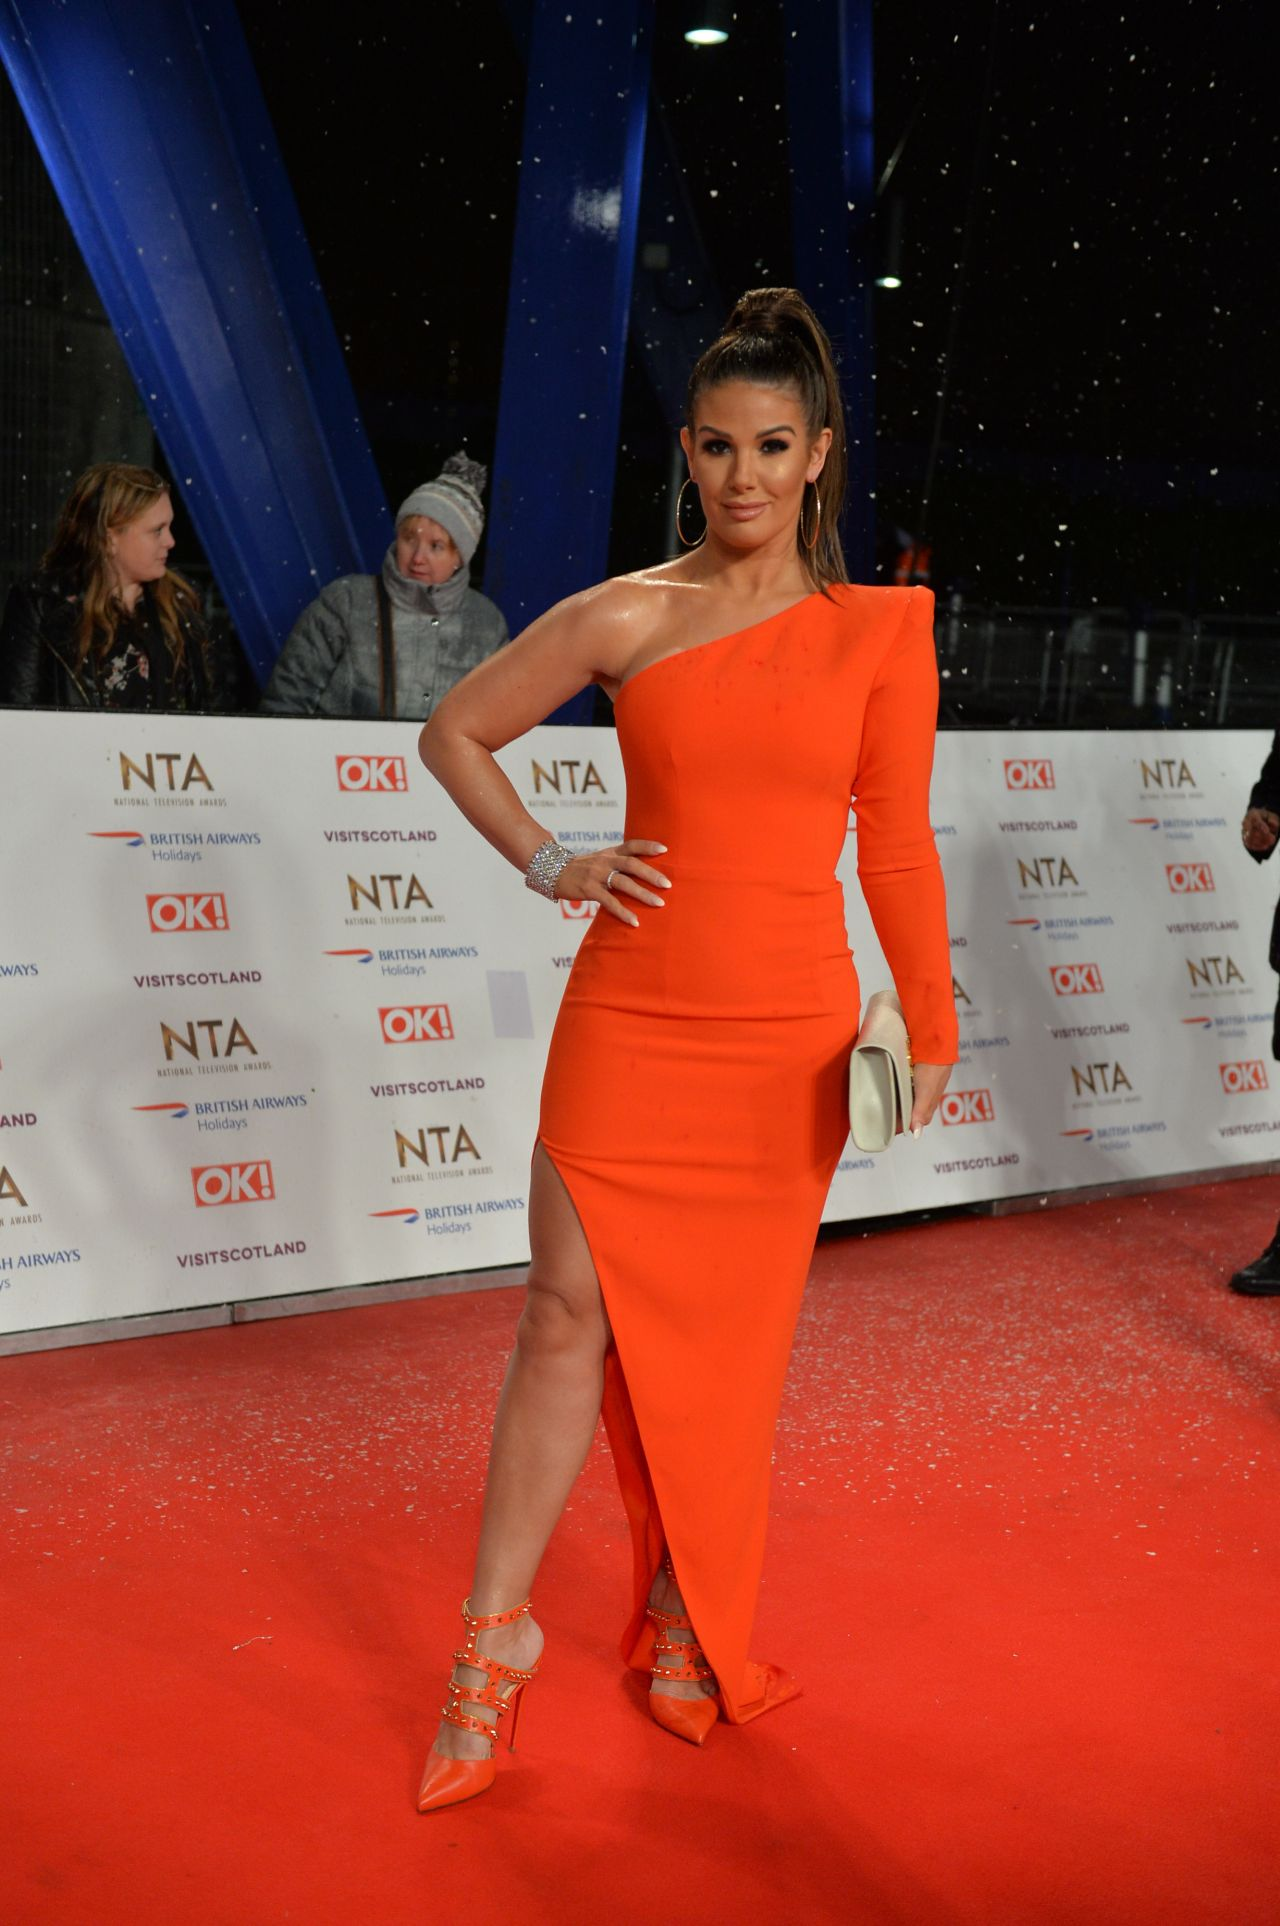 rebekah vardy - photo #36